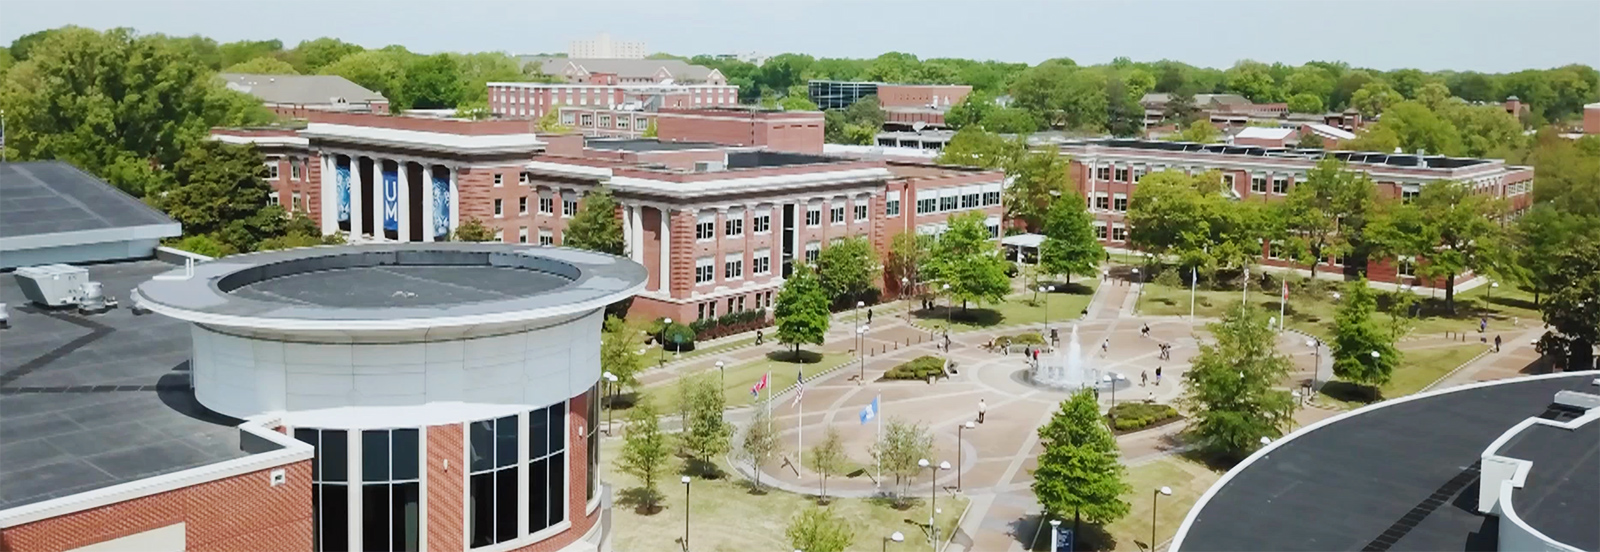 aerial view of Student Plaza